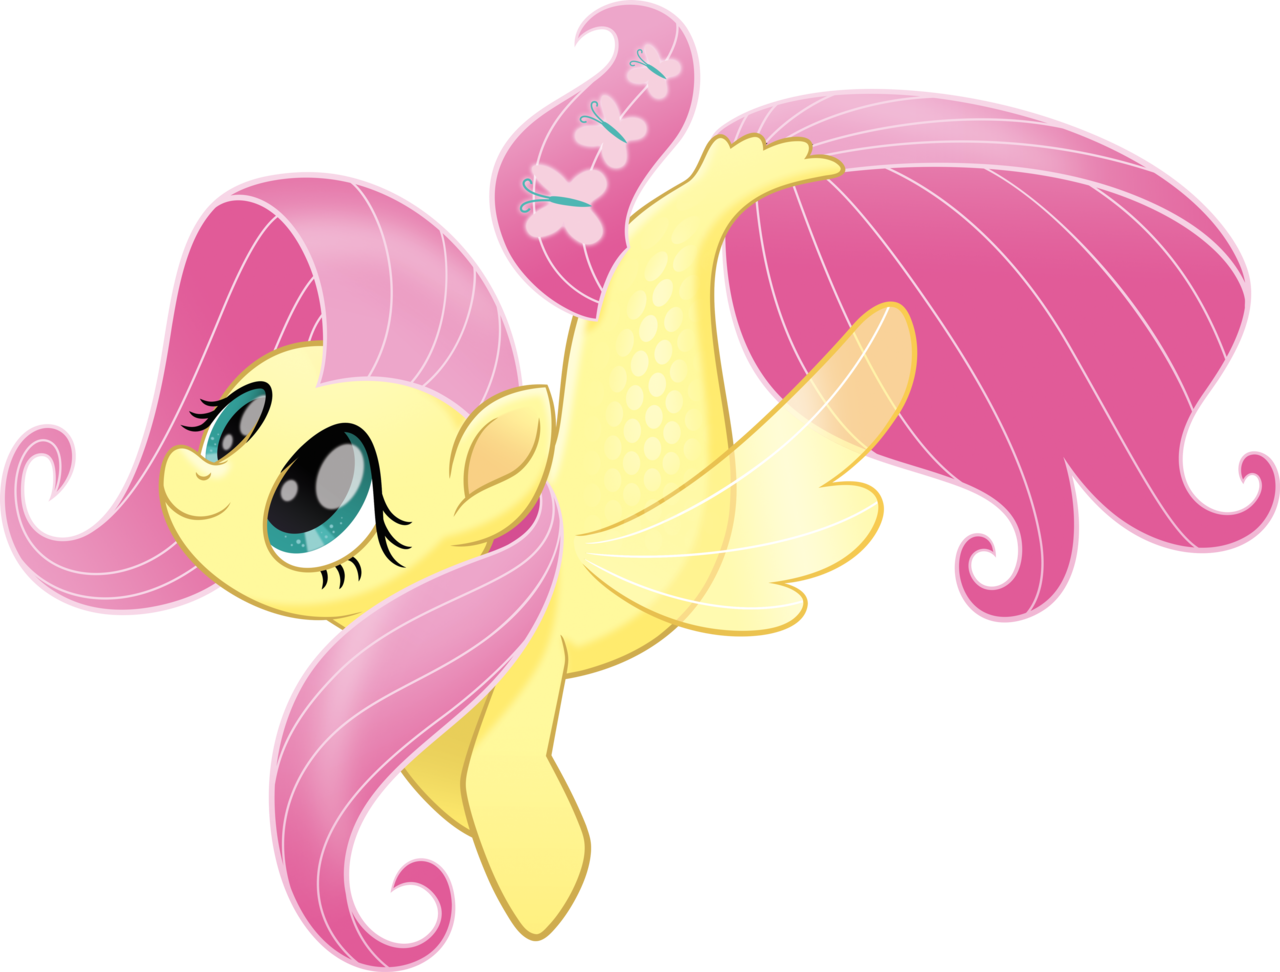 1502611 - absurd res, fluttershy, my little pony: the movie, safe, sea  ponies, seaponified, … | My little pony poster, My little pony movie, My  little pony drawing